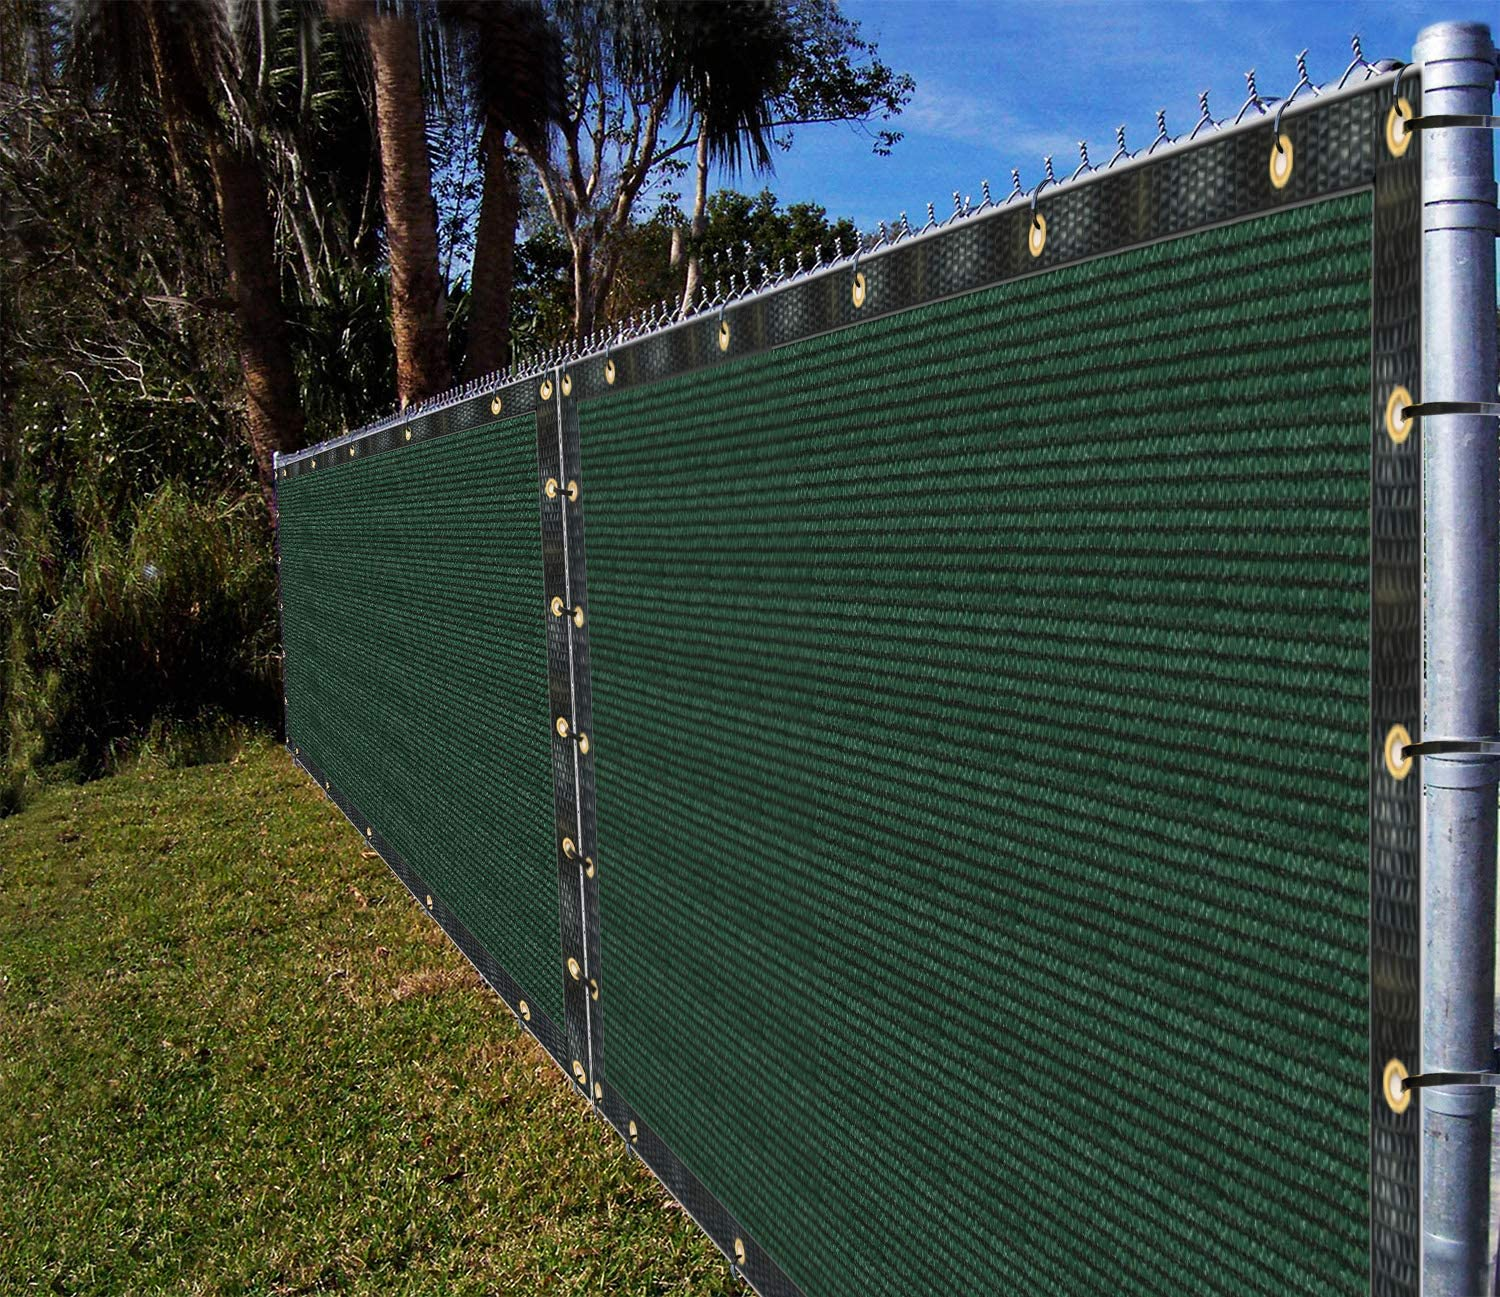 Ifenceview 4'x5' to 4'x50' Green Shade Cloth Fabric Fence Privacy Screen Panels Mesh Net for Construction Site Yard Driveway Garden Pergola Gazebos Railing Canopy Awning 180 GSM UV Protection (4'x10')